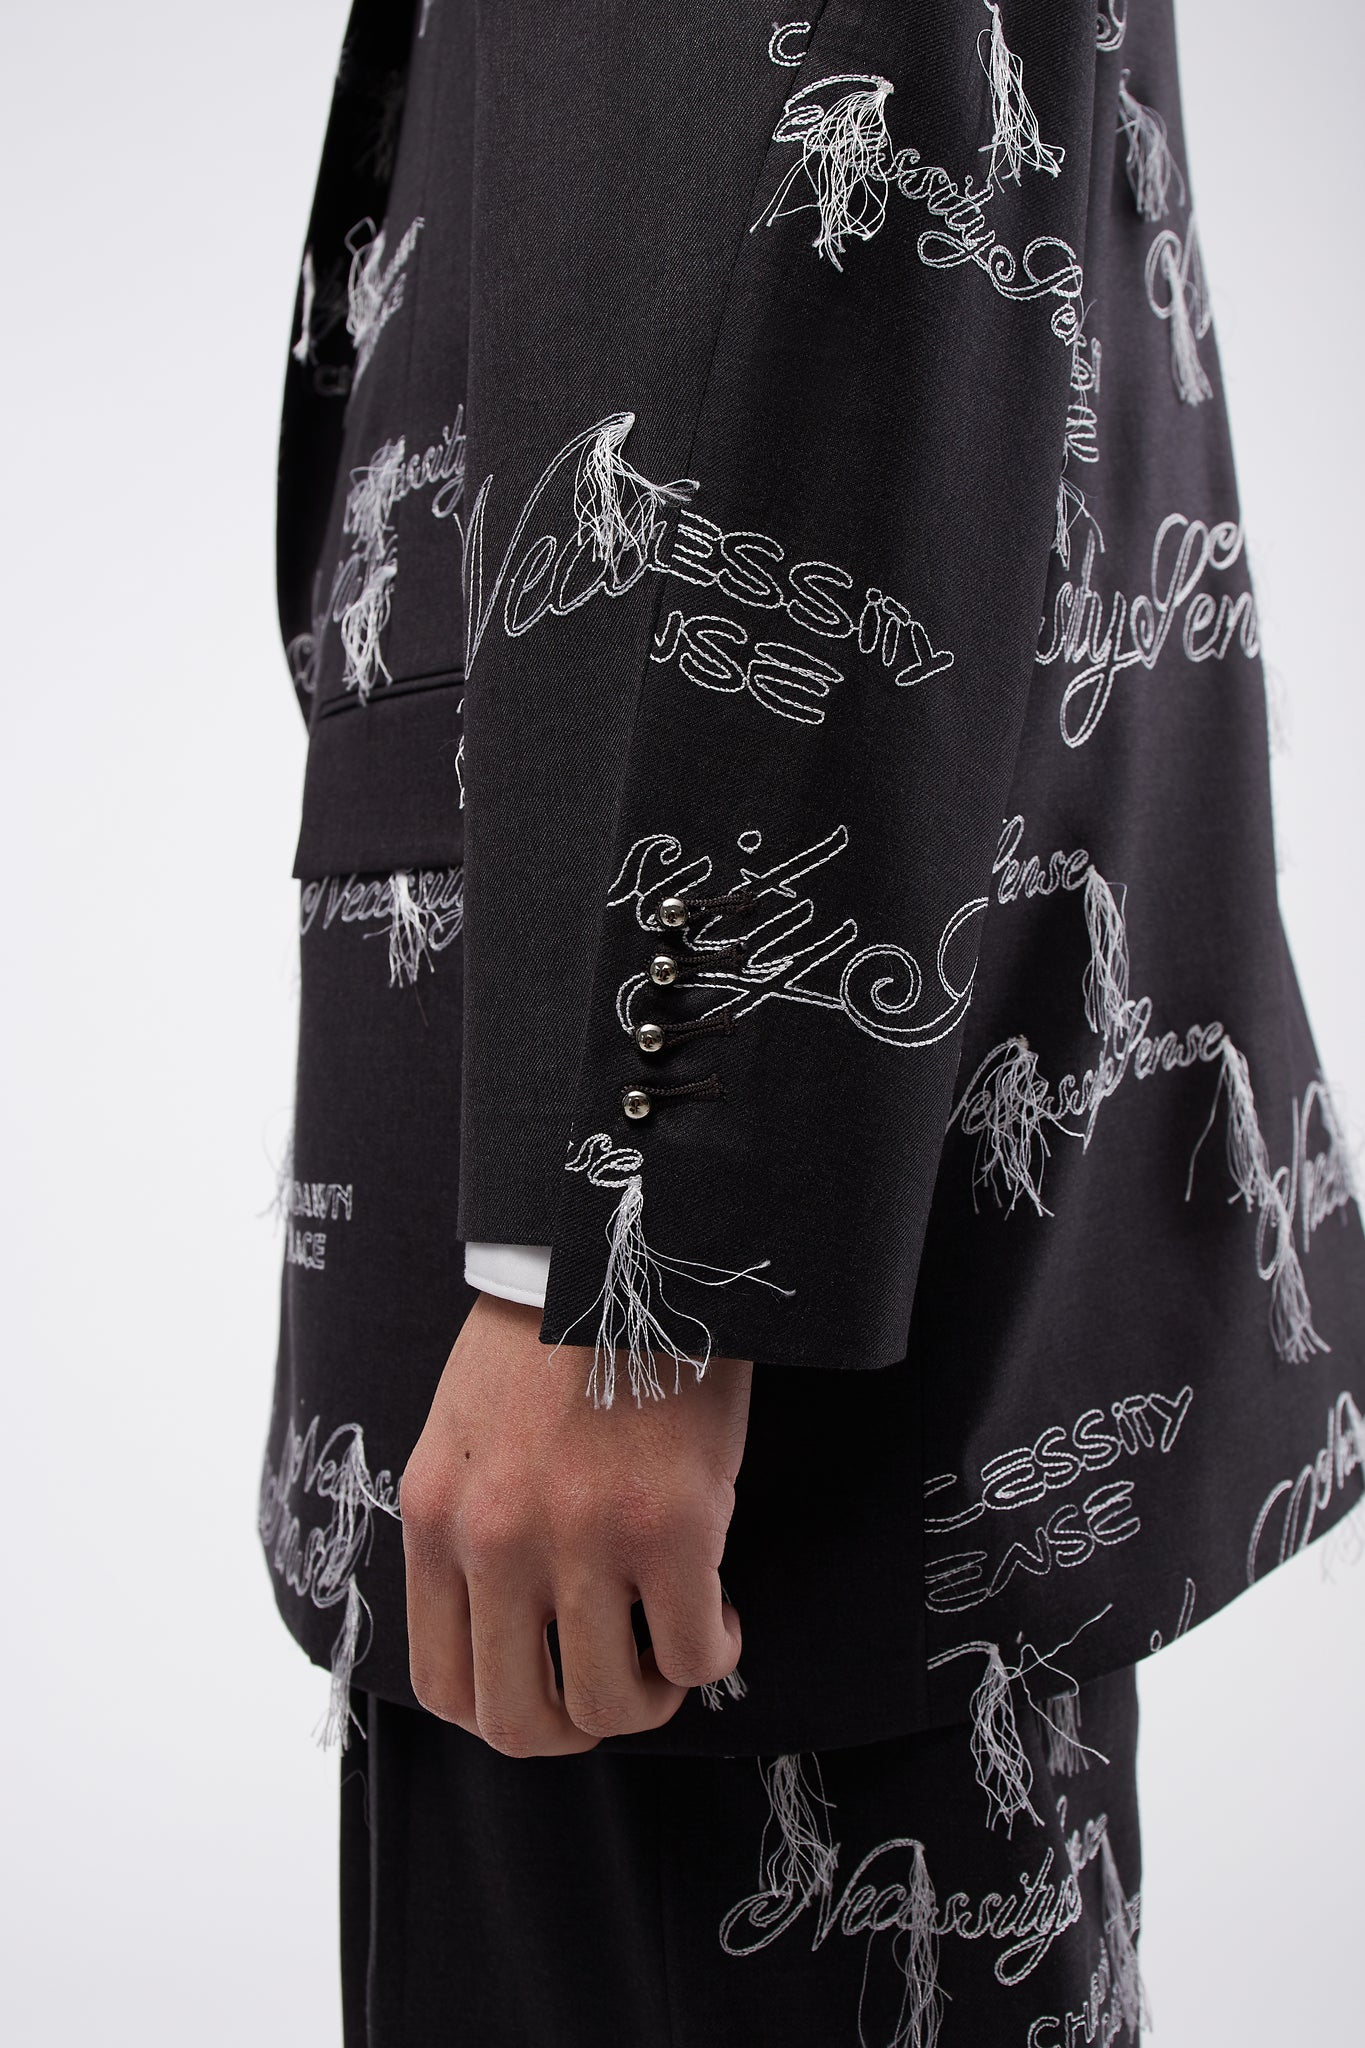 Sam Oversized Single Breast Suit Concrete Grey White Embroidery